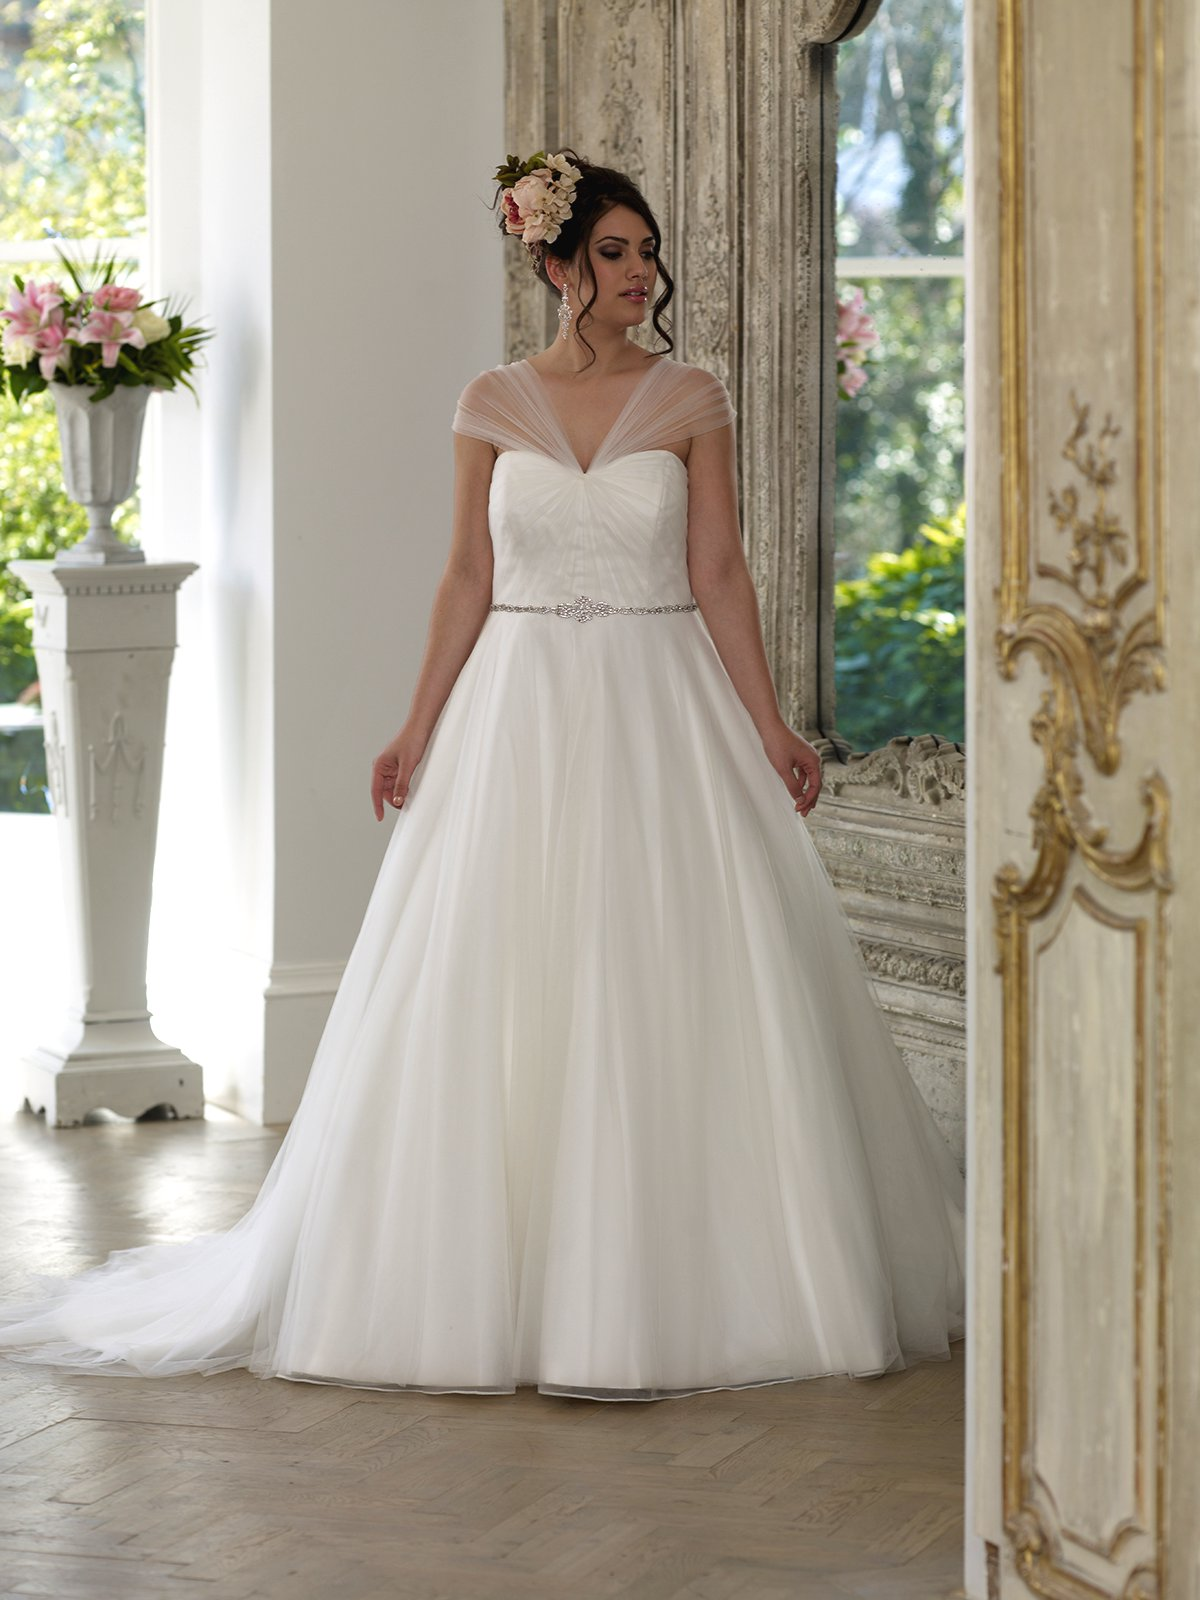 Style SON91612 by Sonsie - Find Your Dream Dress